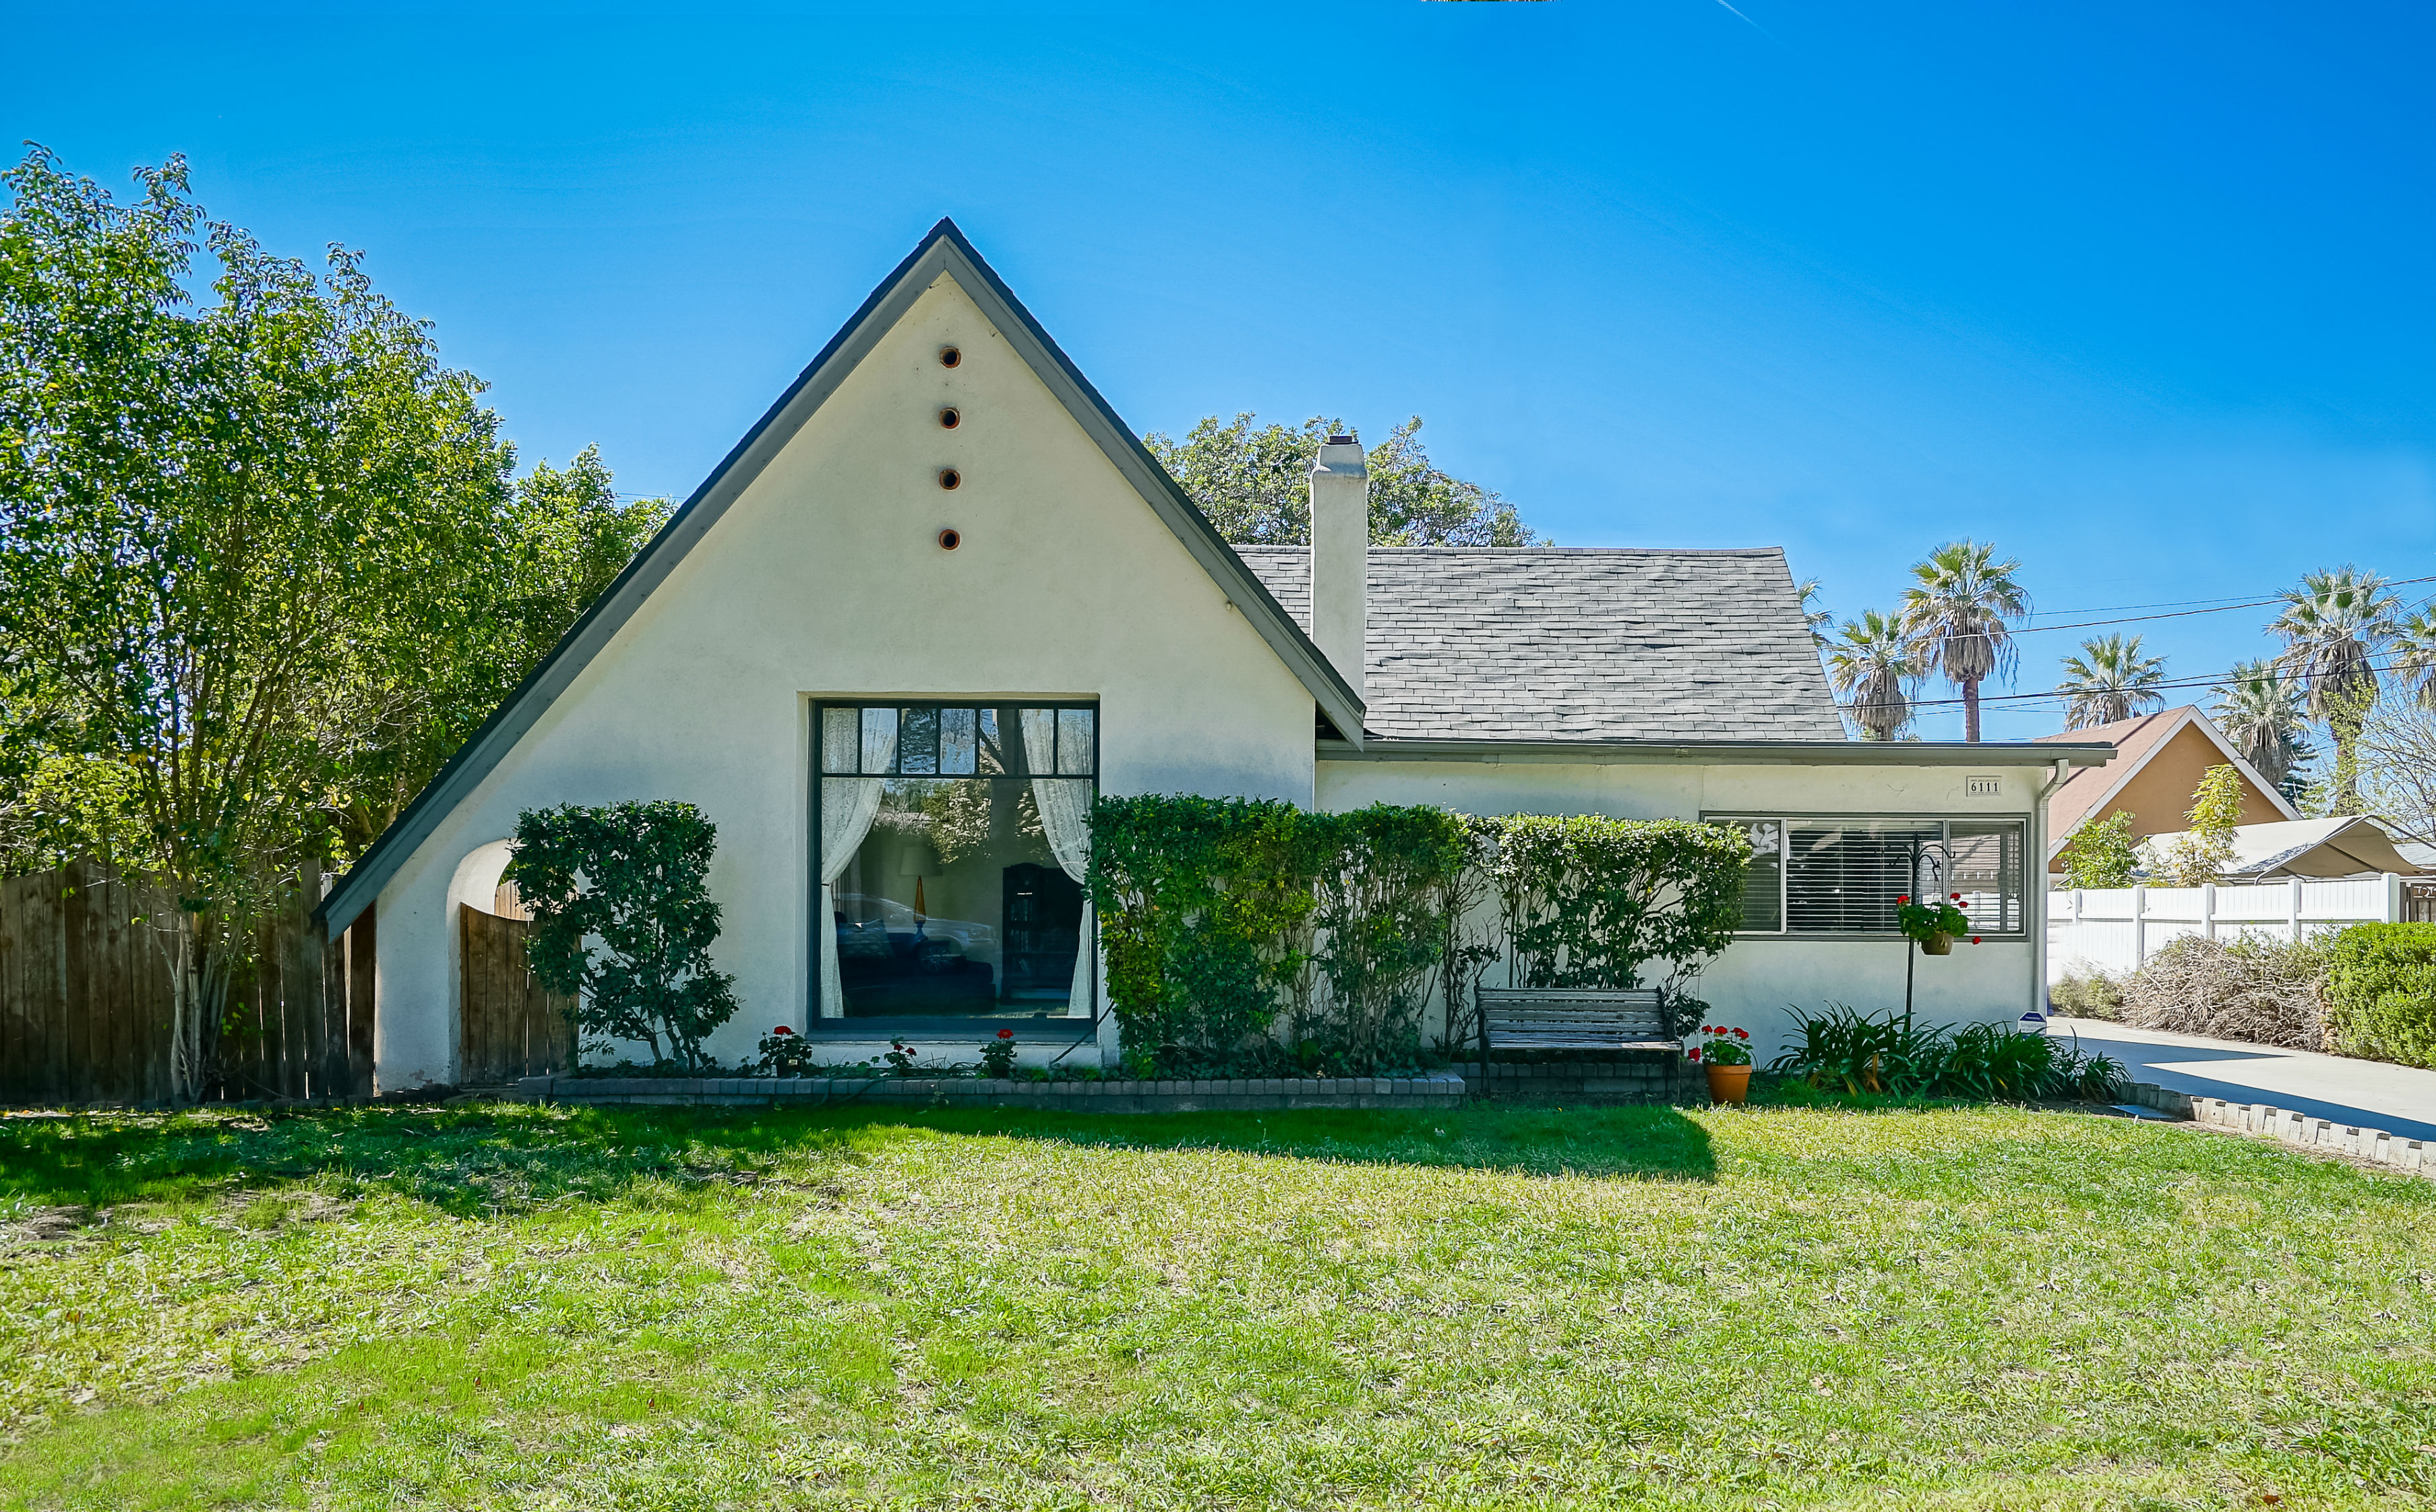 6111 Del Ray Ct., Riverside CA 92506 listed by THE SISTER TEAM